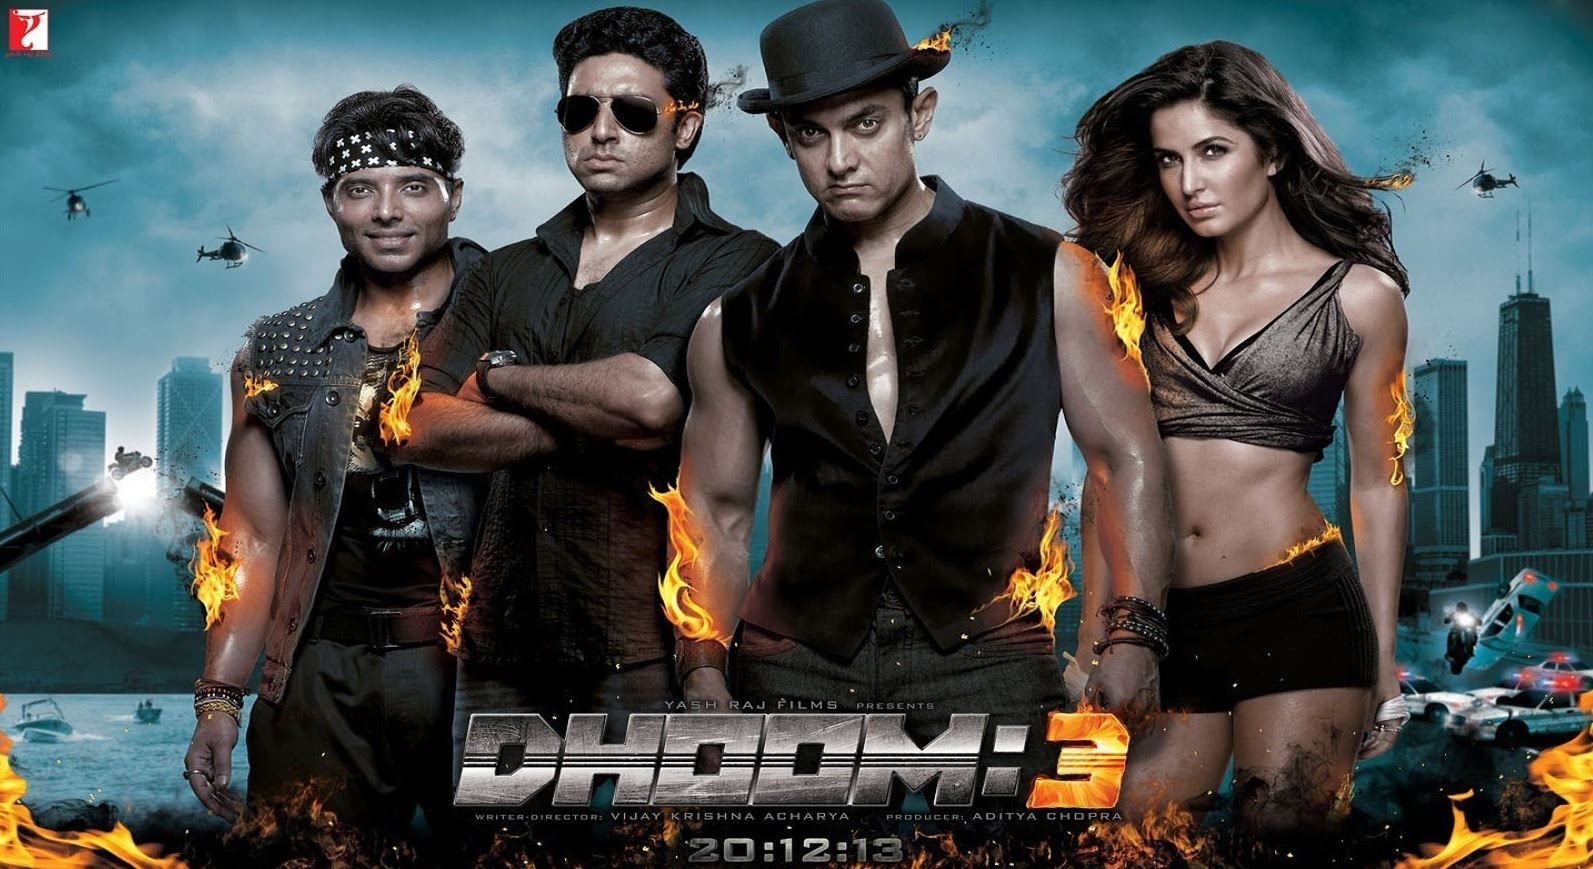 Best Bollywood Hindi Movies on Amazon Prime - The Indian Wire